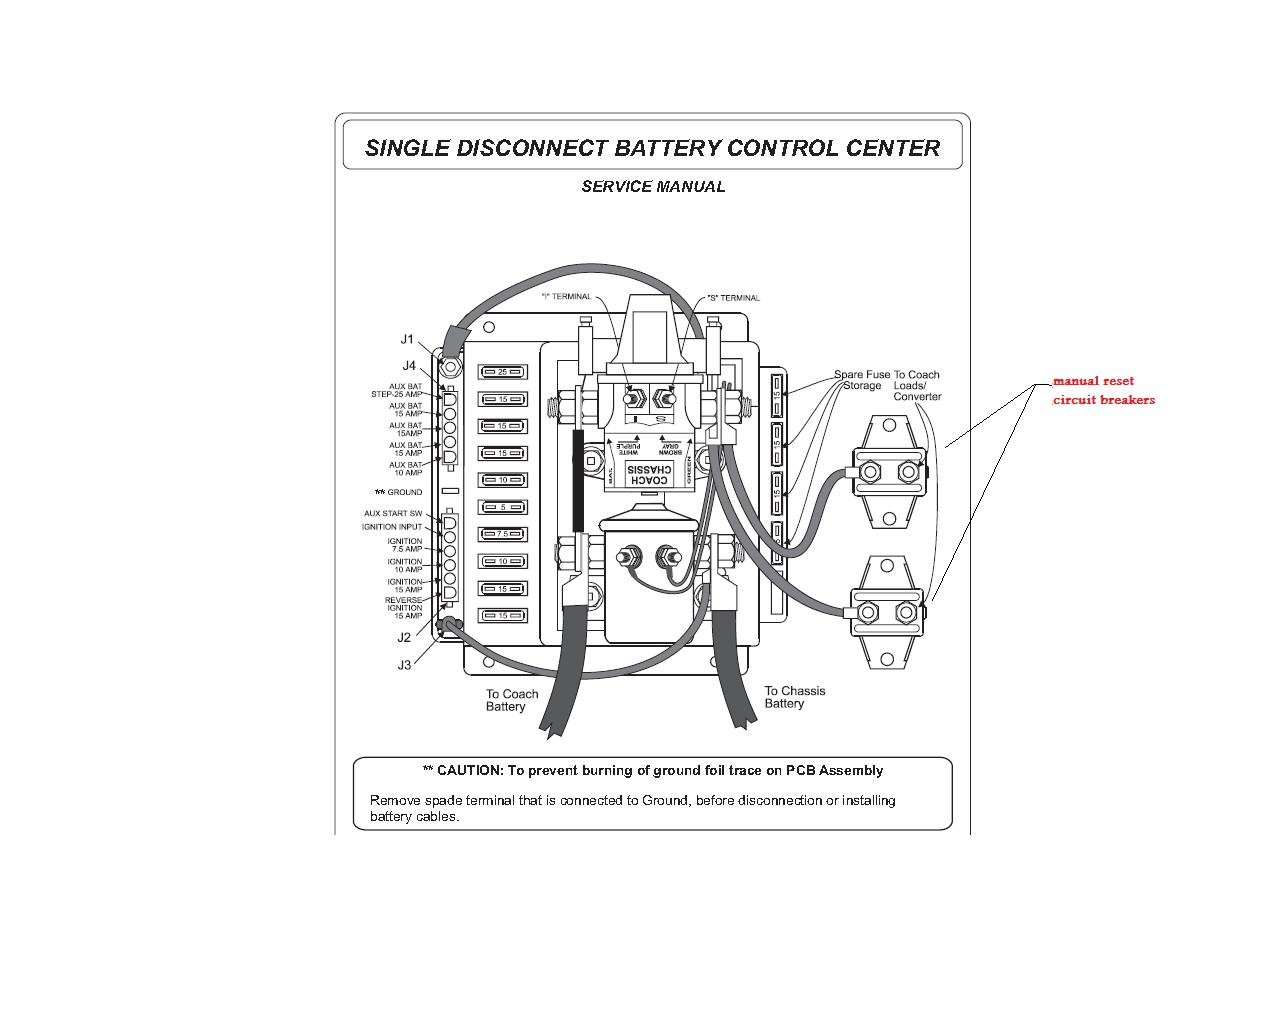 k r switch panel wiring diagram within diagram wiring and engine